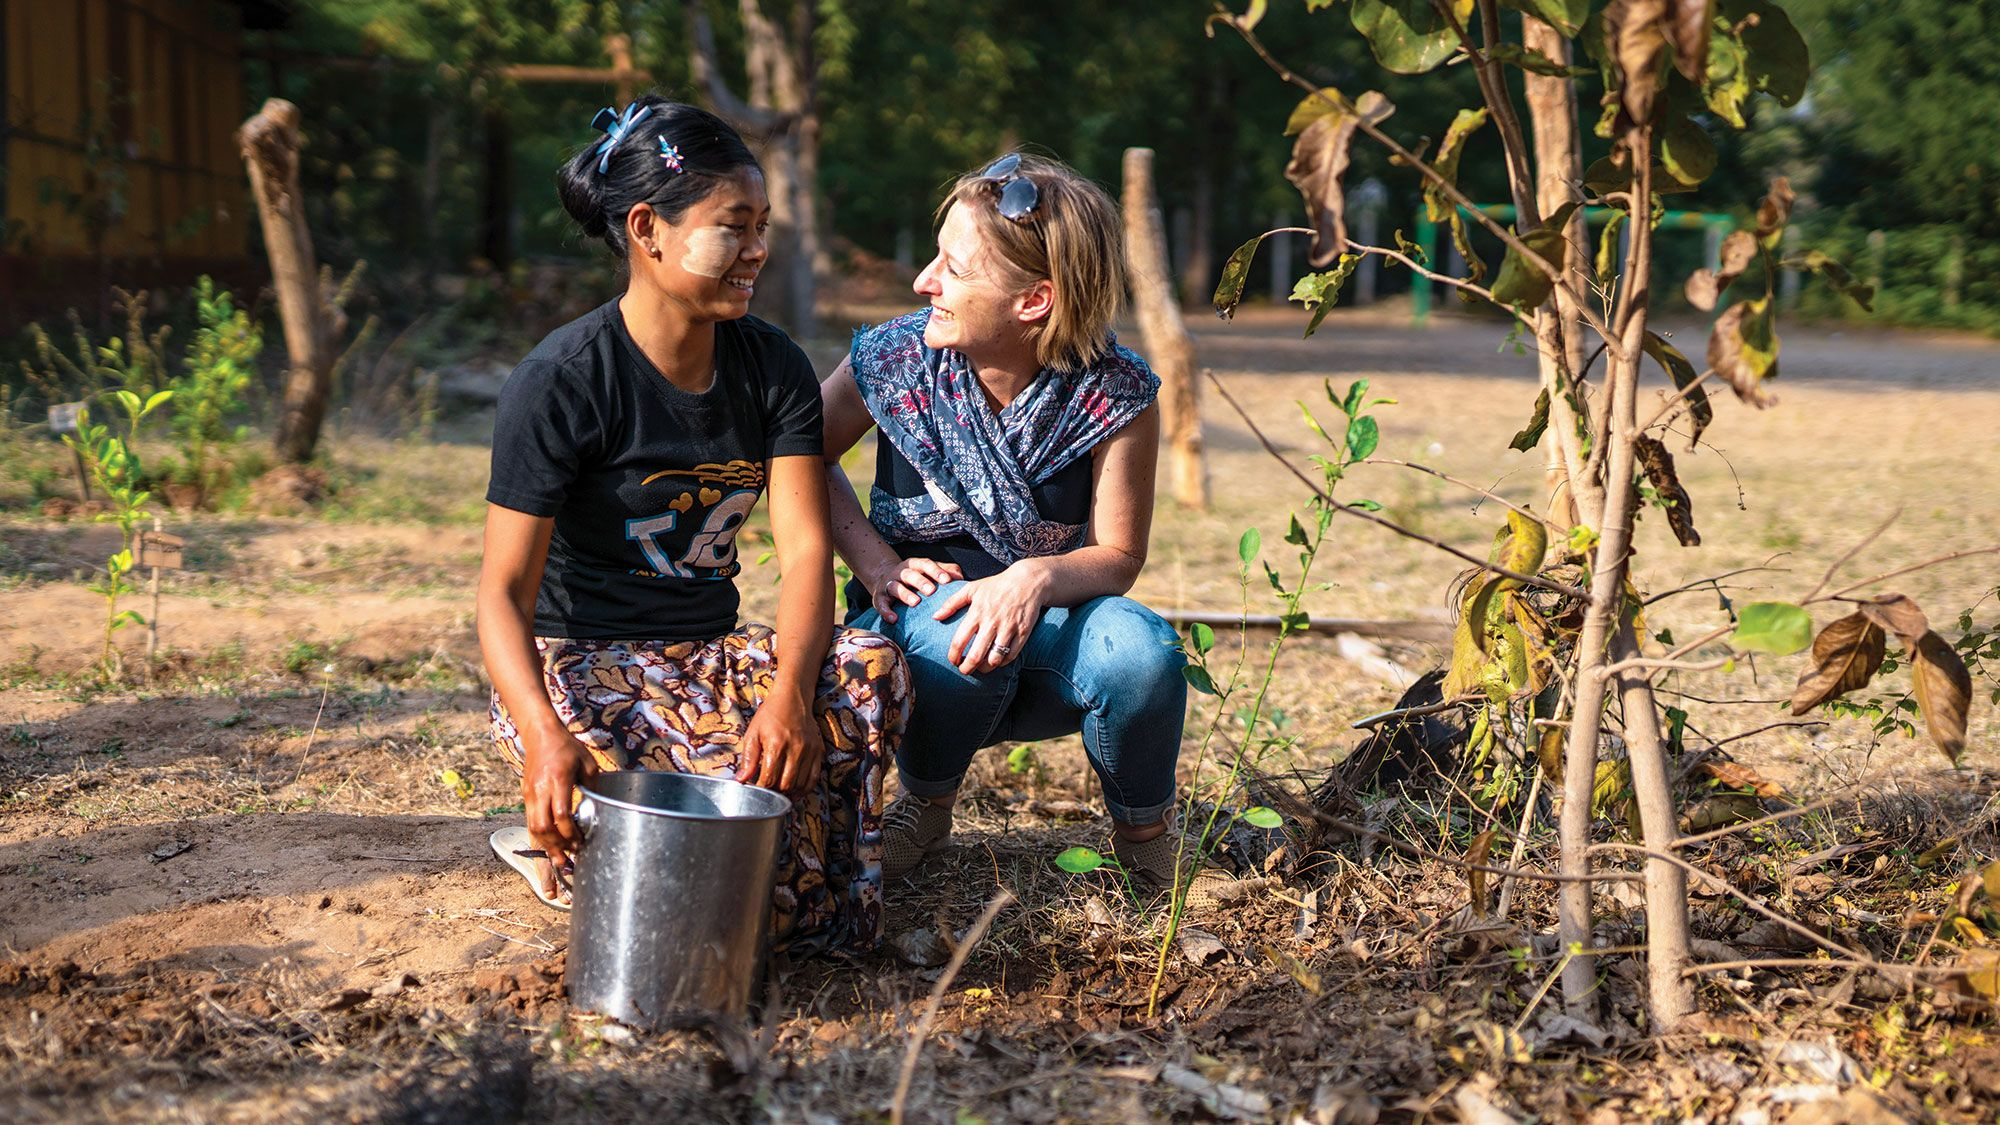 The Intrepid Foundation works with ActionAid Myanmar on tree-planting projects.